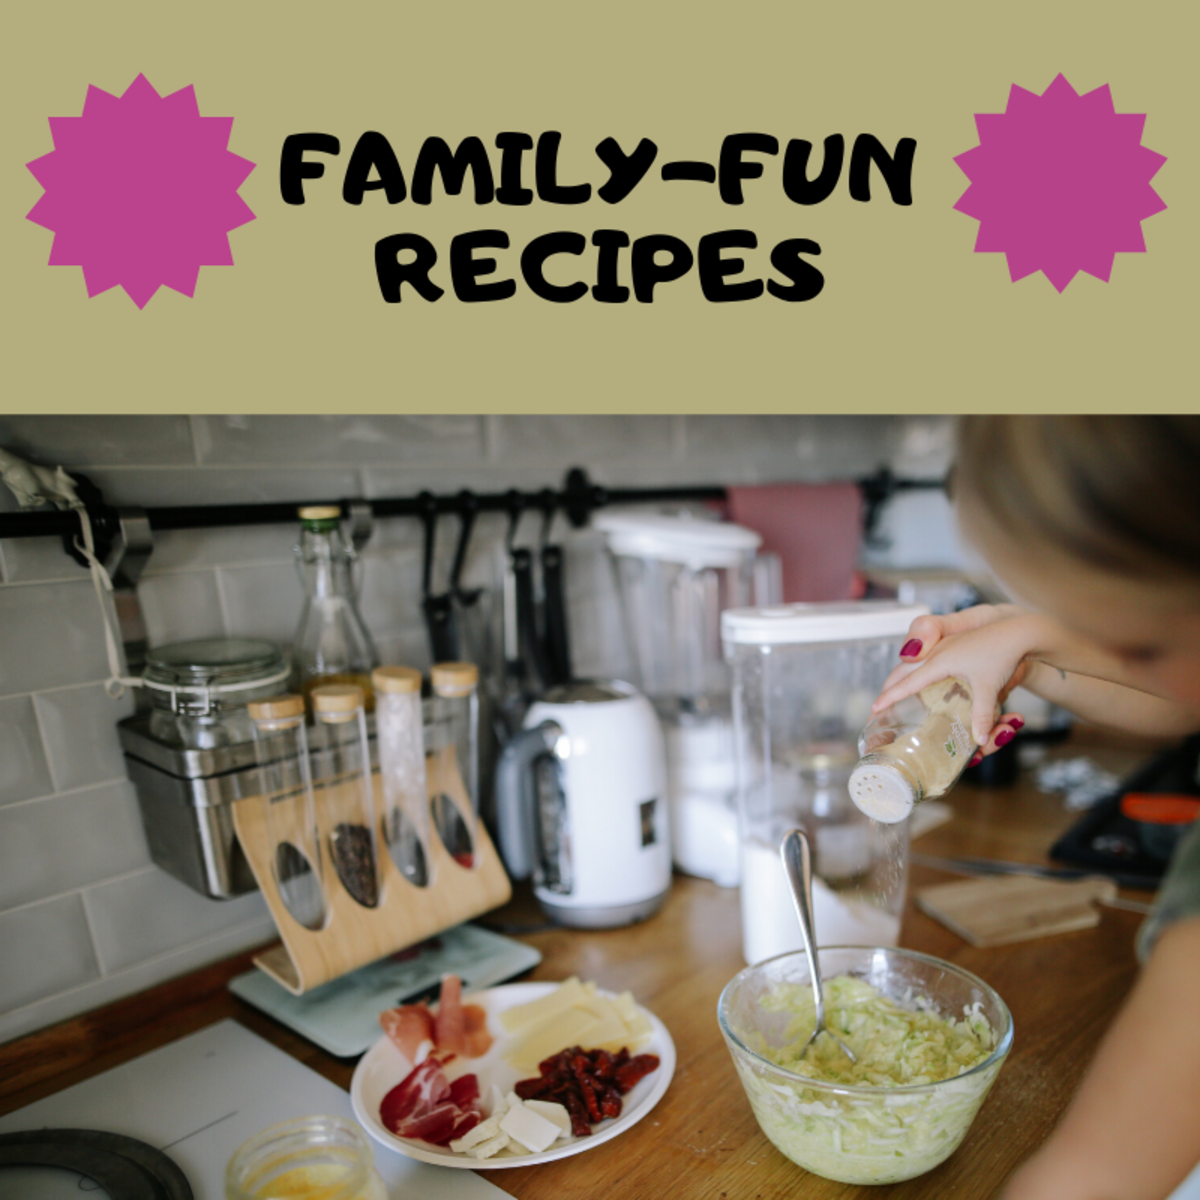 Teach Kids to Cook with 5 Family-Fun Recipes